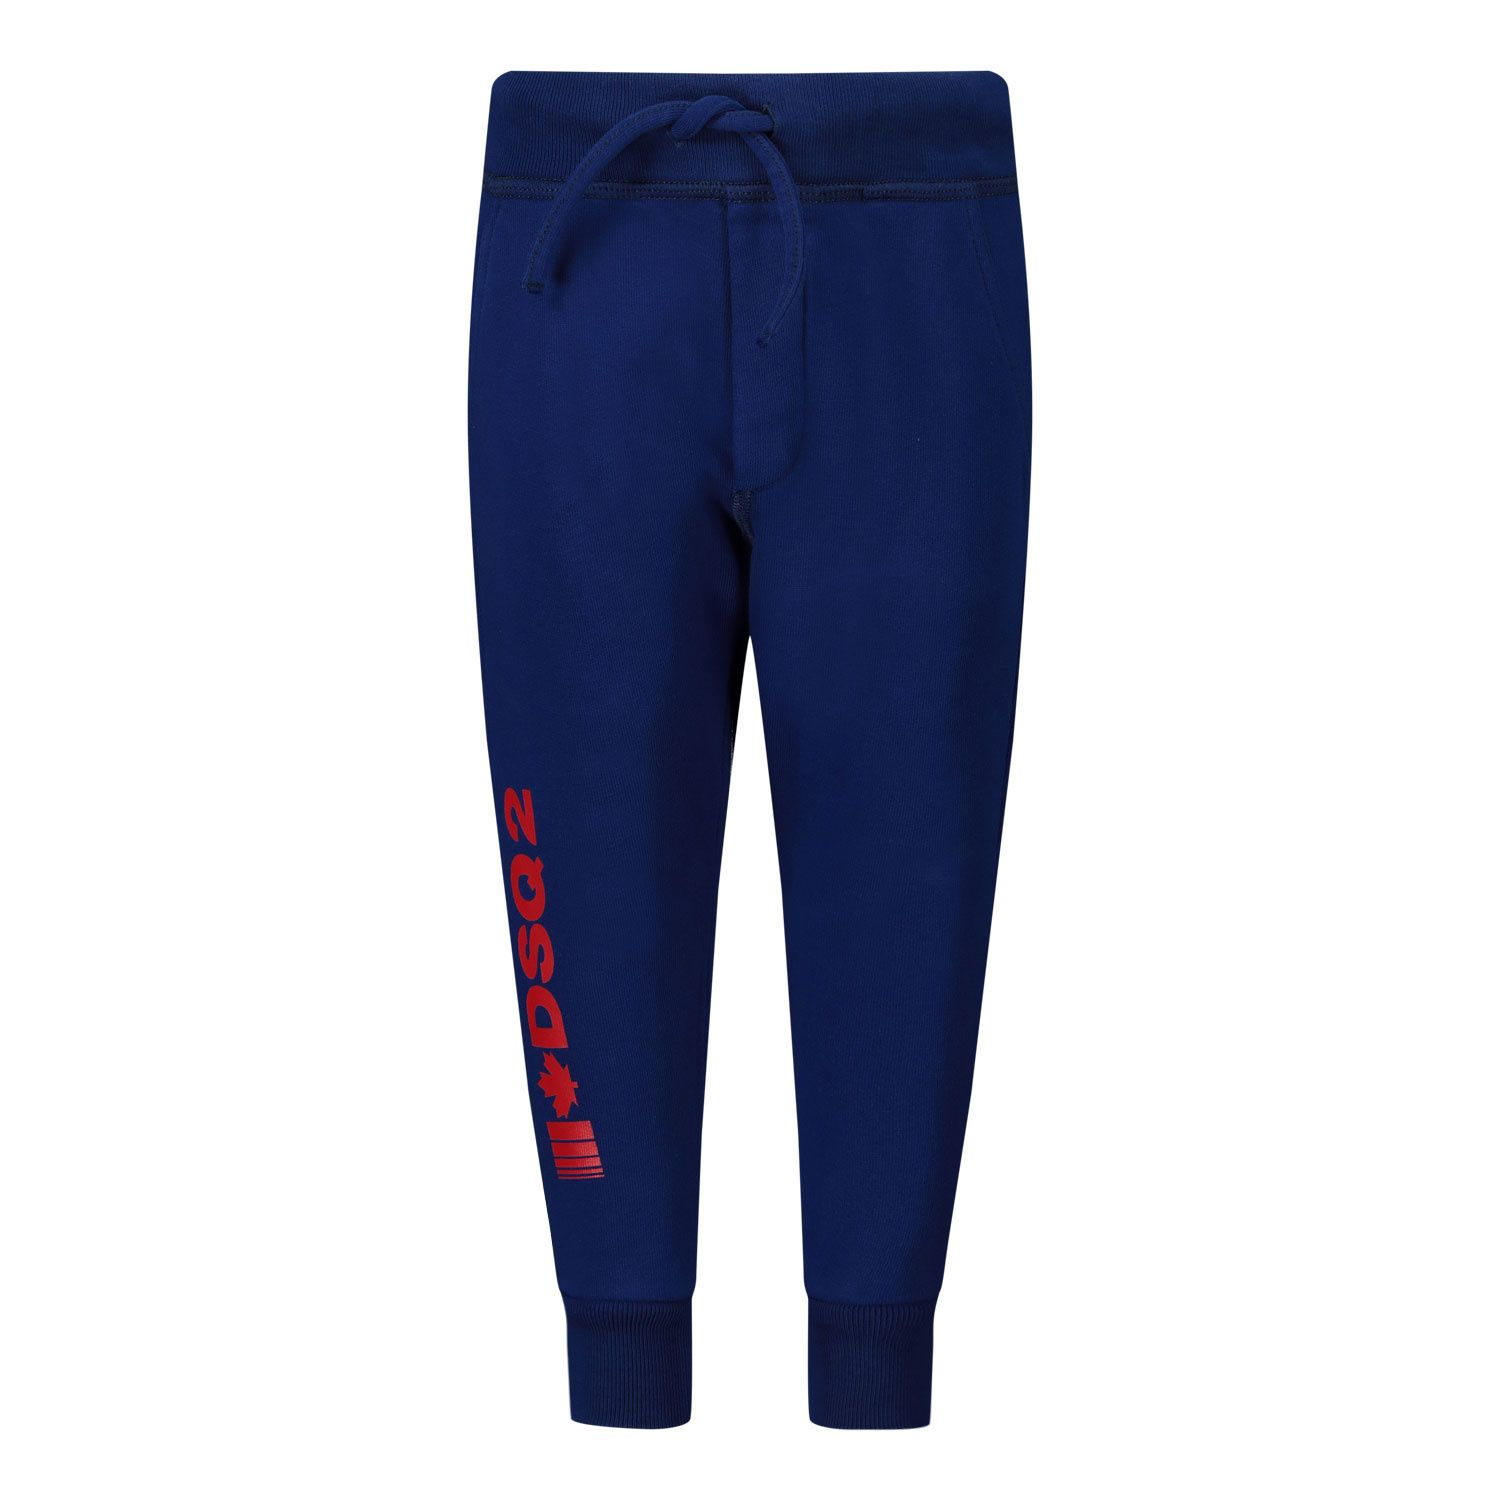 Picture of Dsquared2 DQ04D0 baby pants cobalt blue